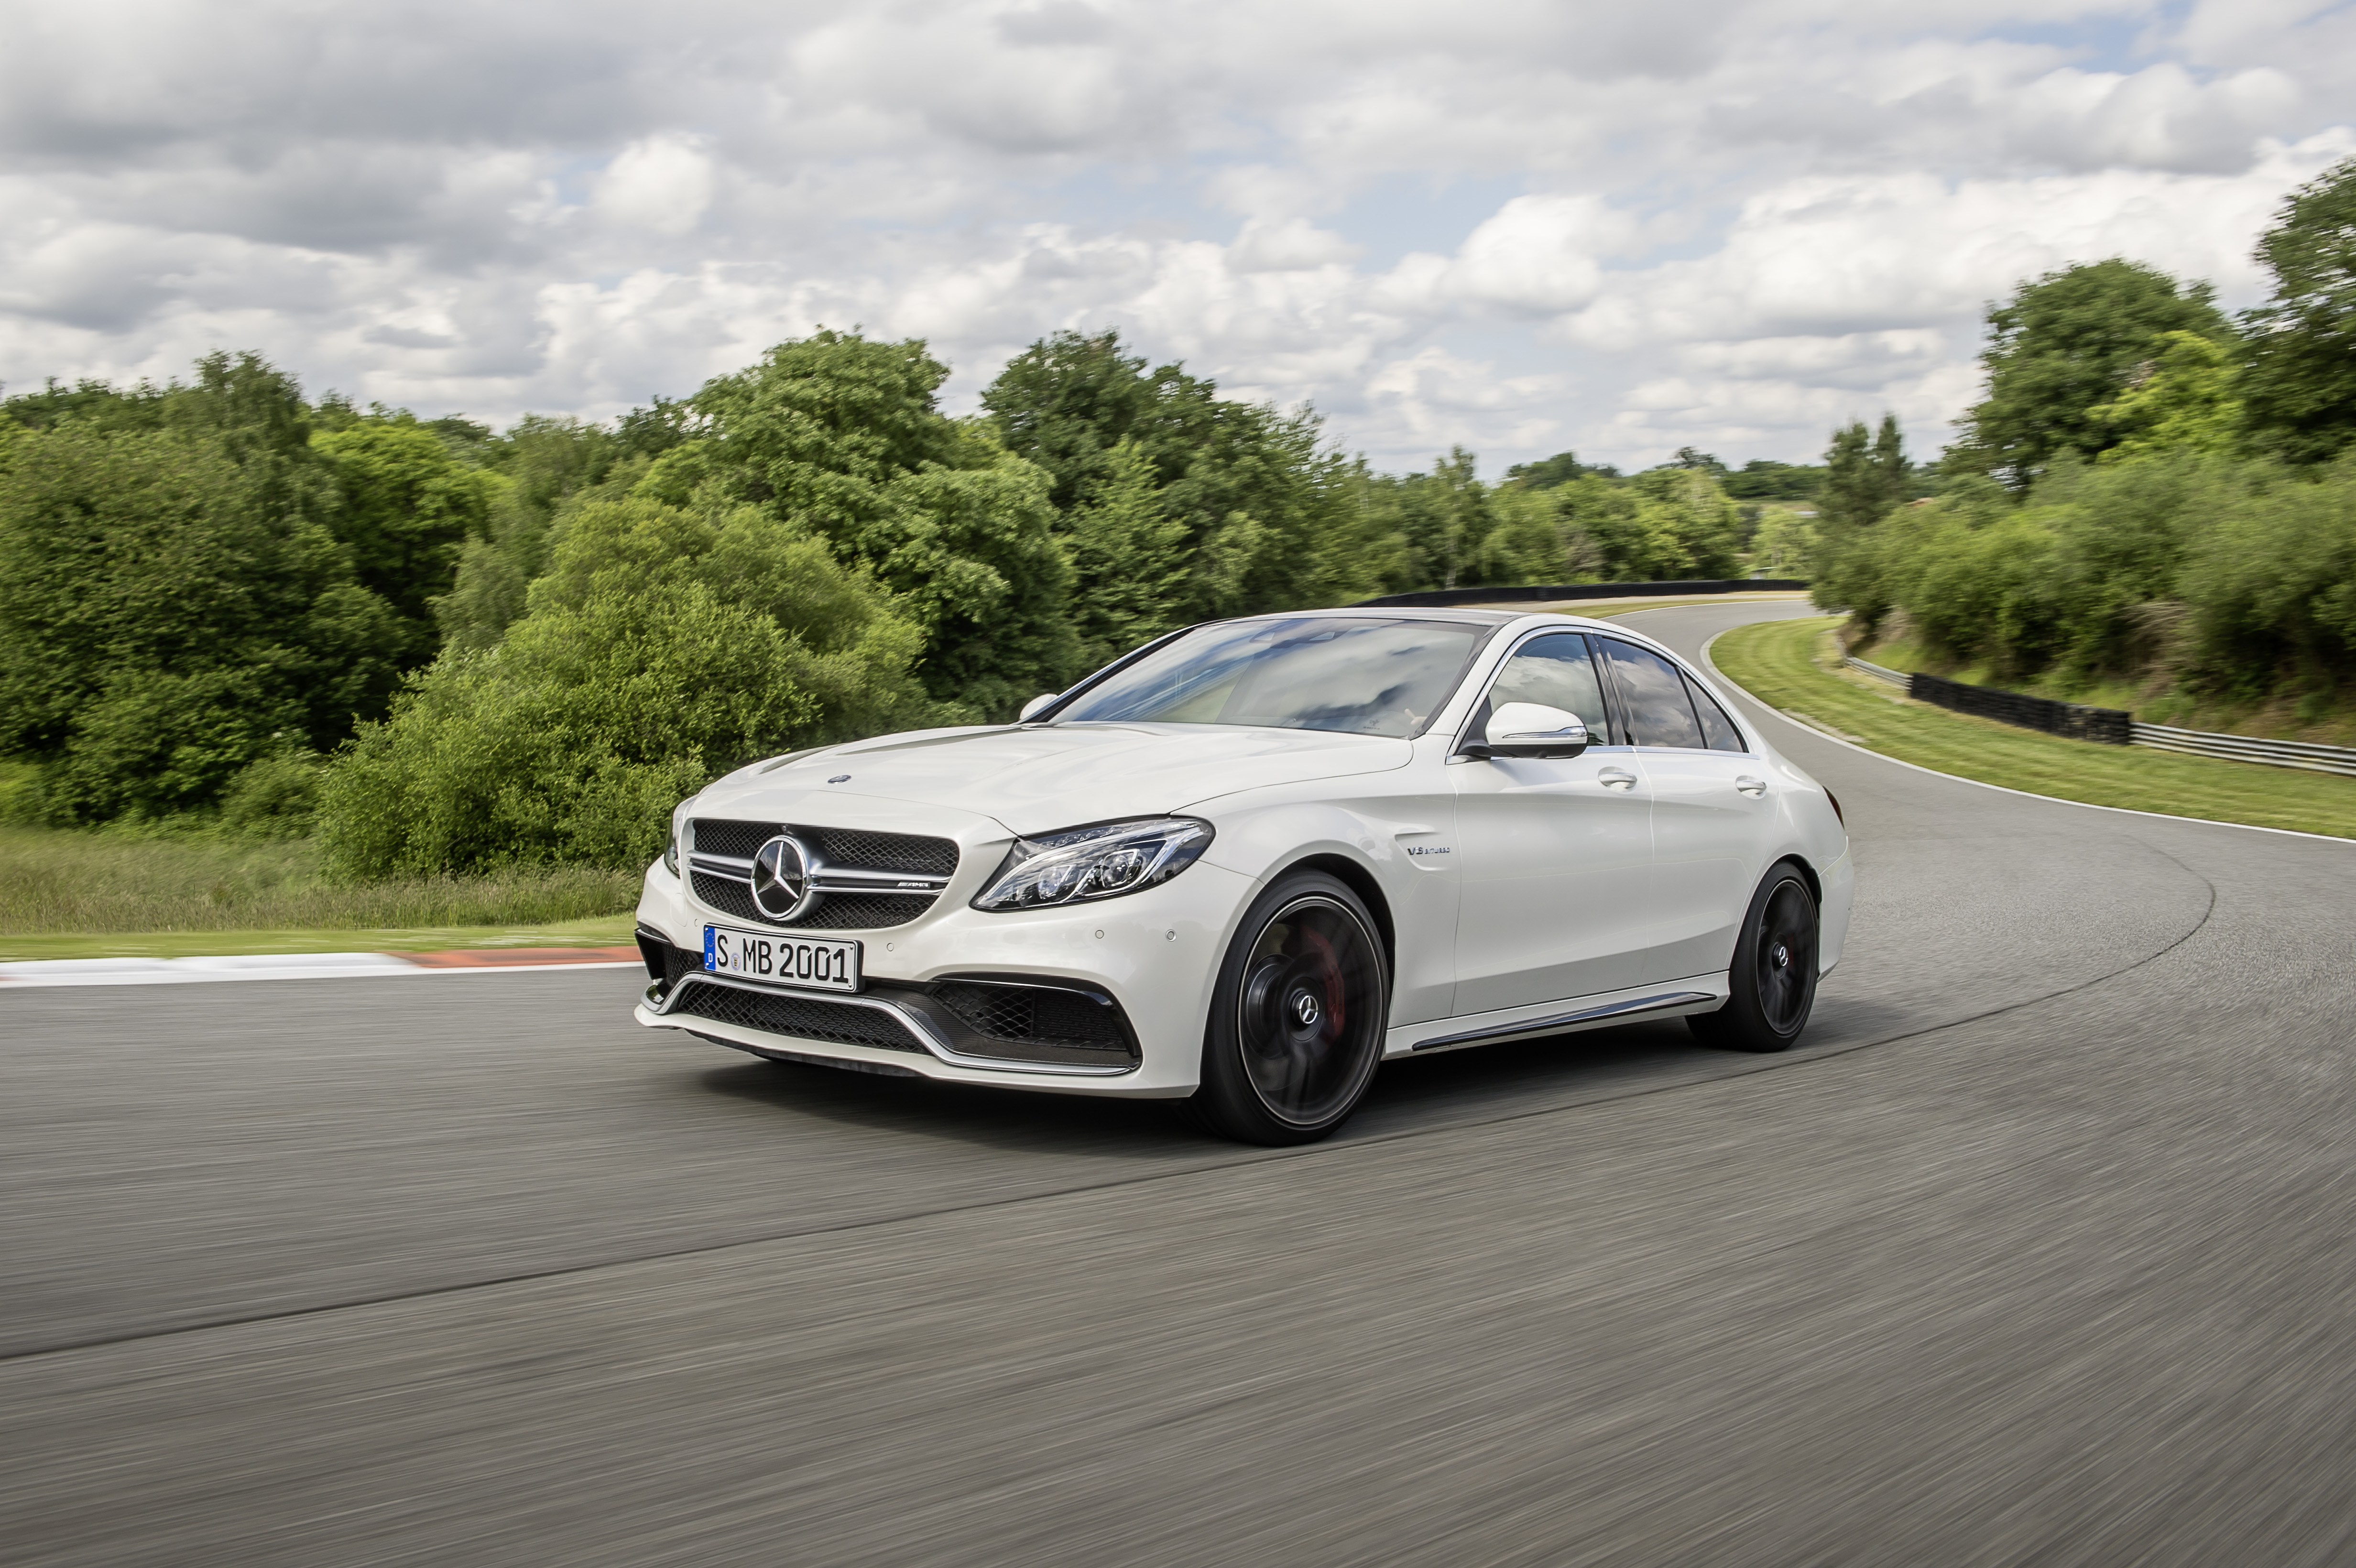 tan image c how avantgarde metallic a mercedes paul amg diamantsilber cost revealed does line details much first benz released class